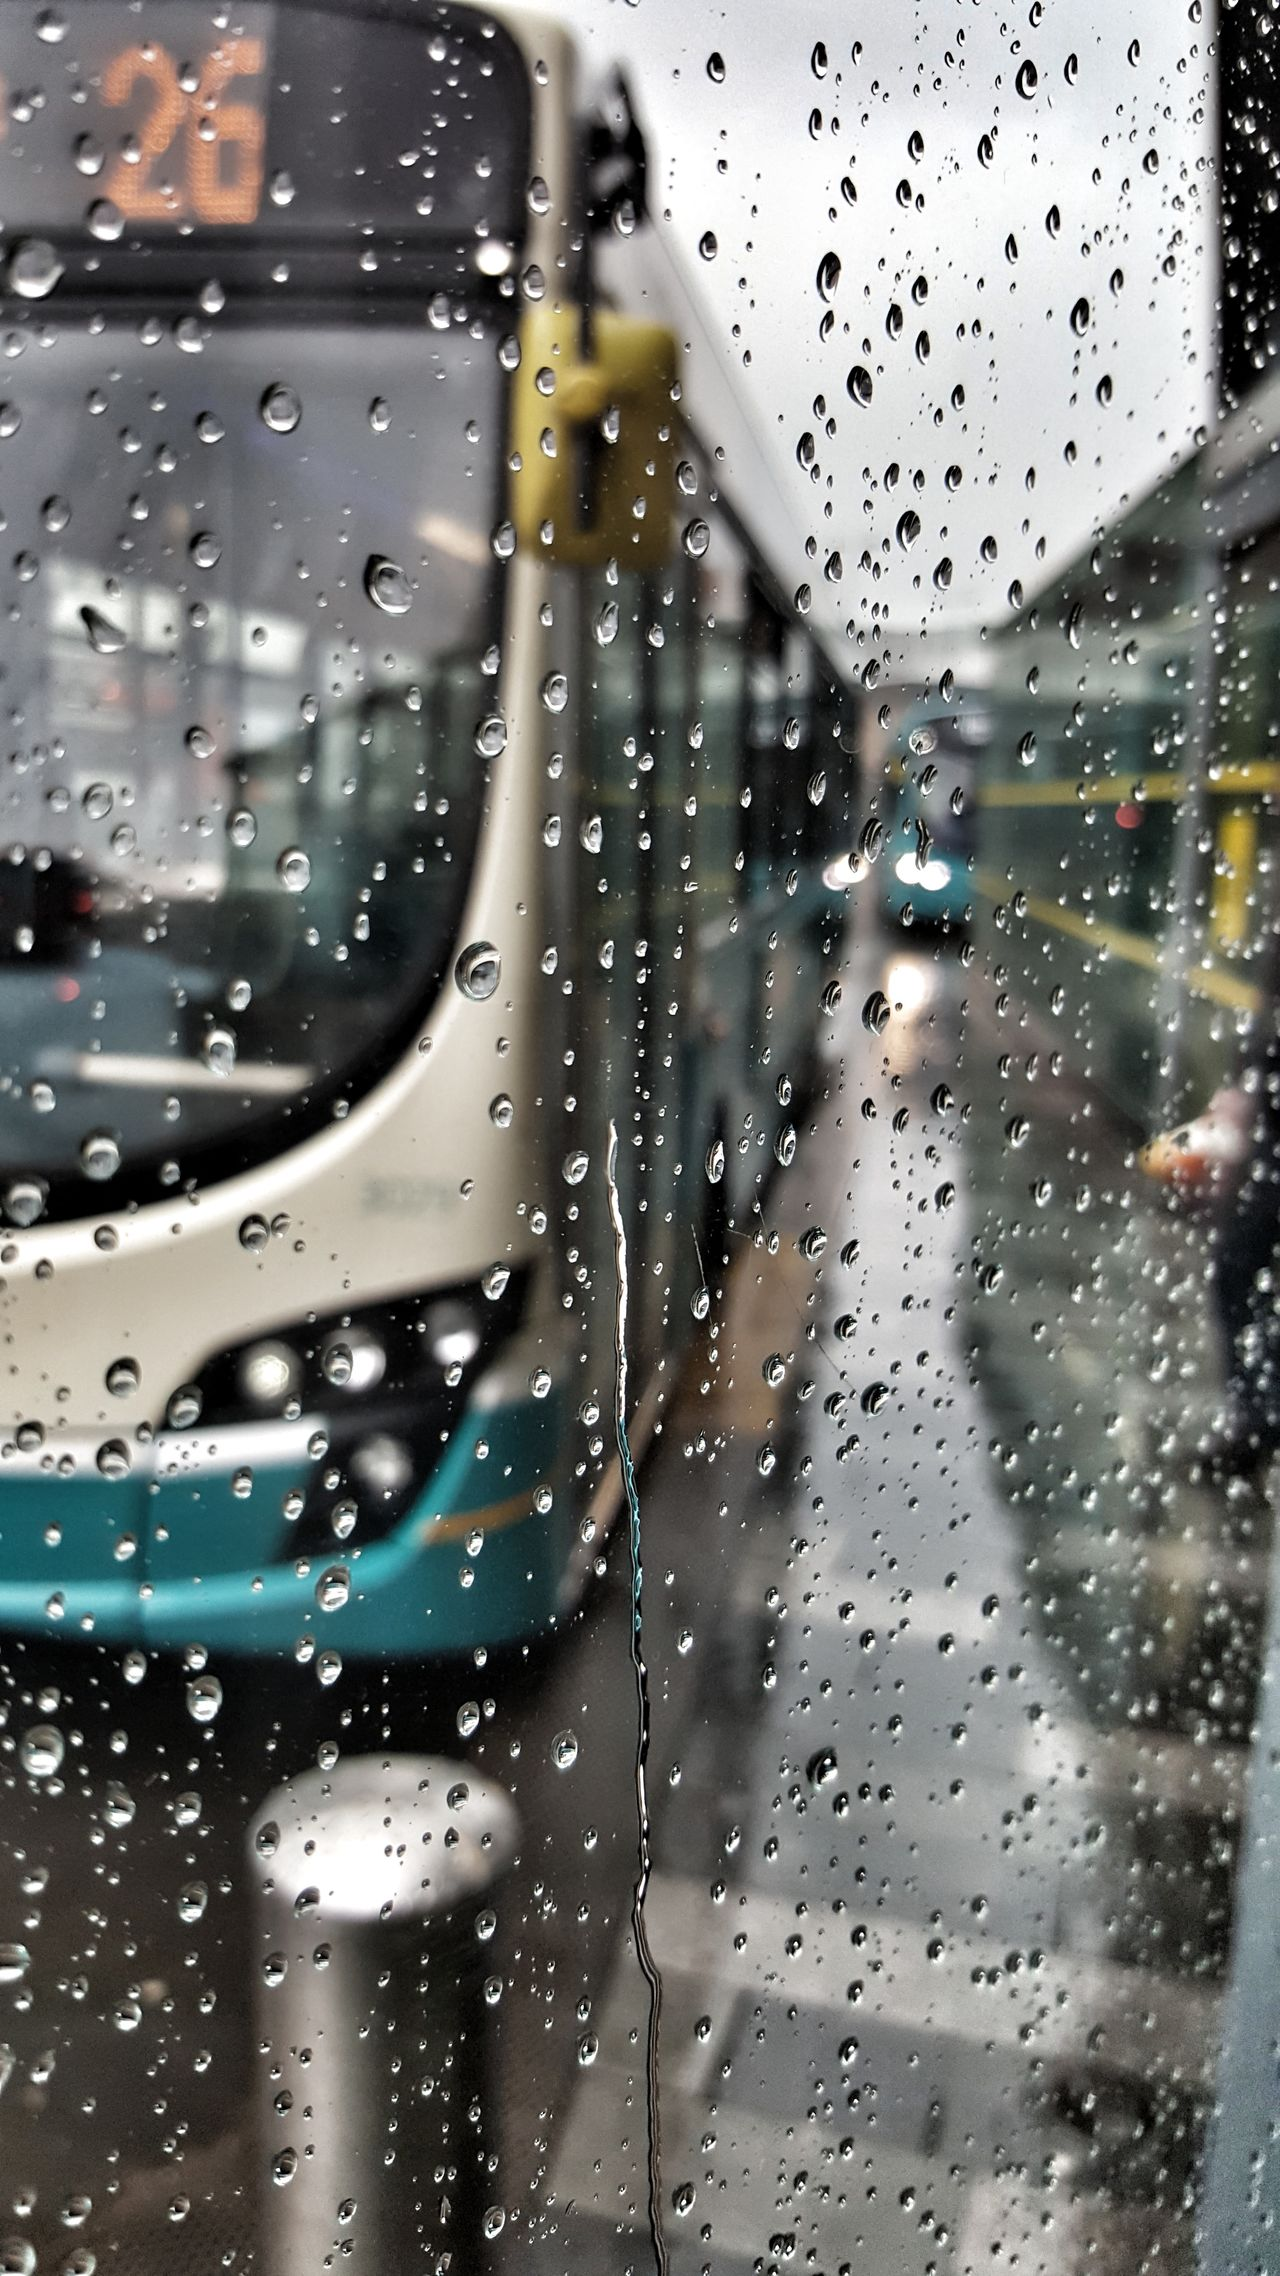 RainyDay Bus Station Cold Water Love Nice Happy :) Calm & Cool Fantastic View Love To Take Photos ❤ Winter Rainy Days☔ Wet Freash Air Weather Day Amazing View Hope Window